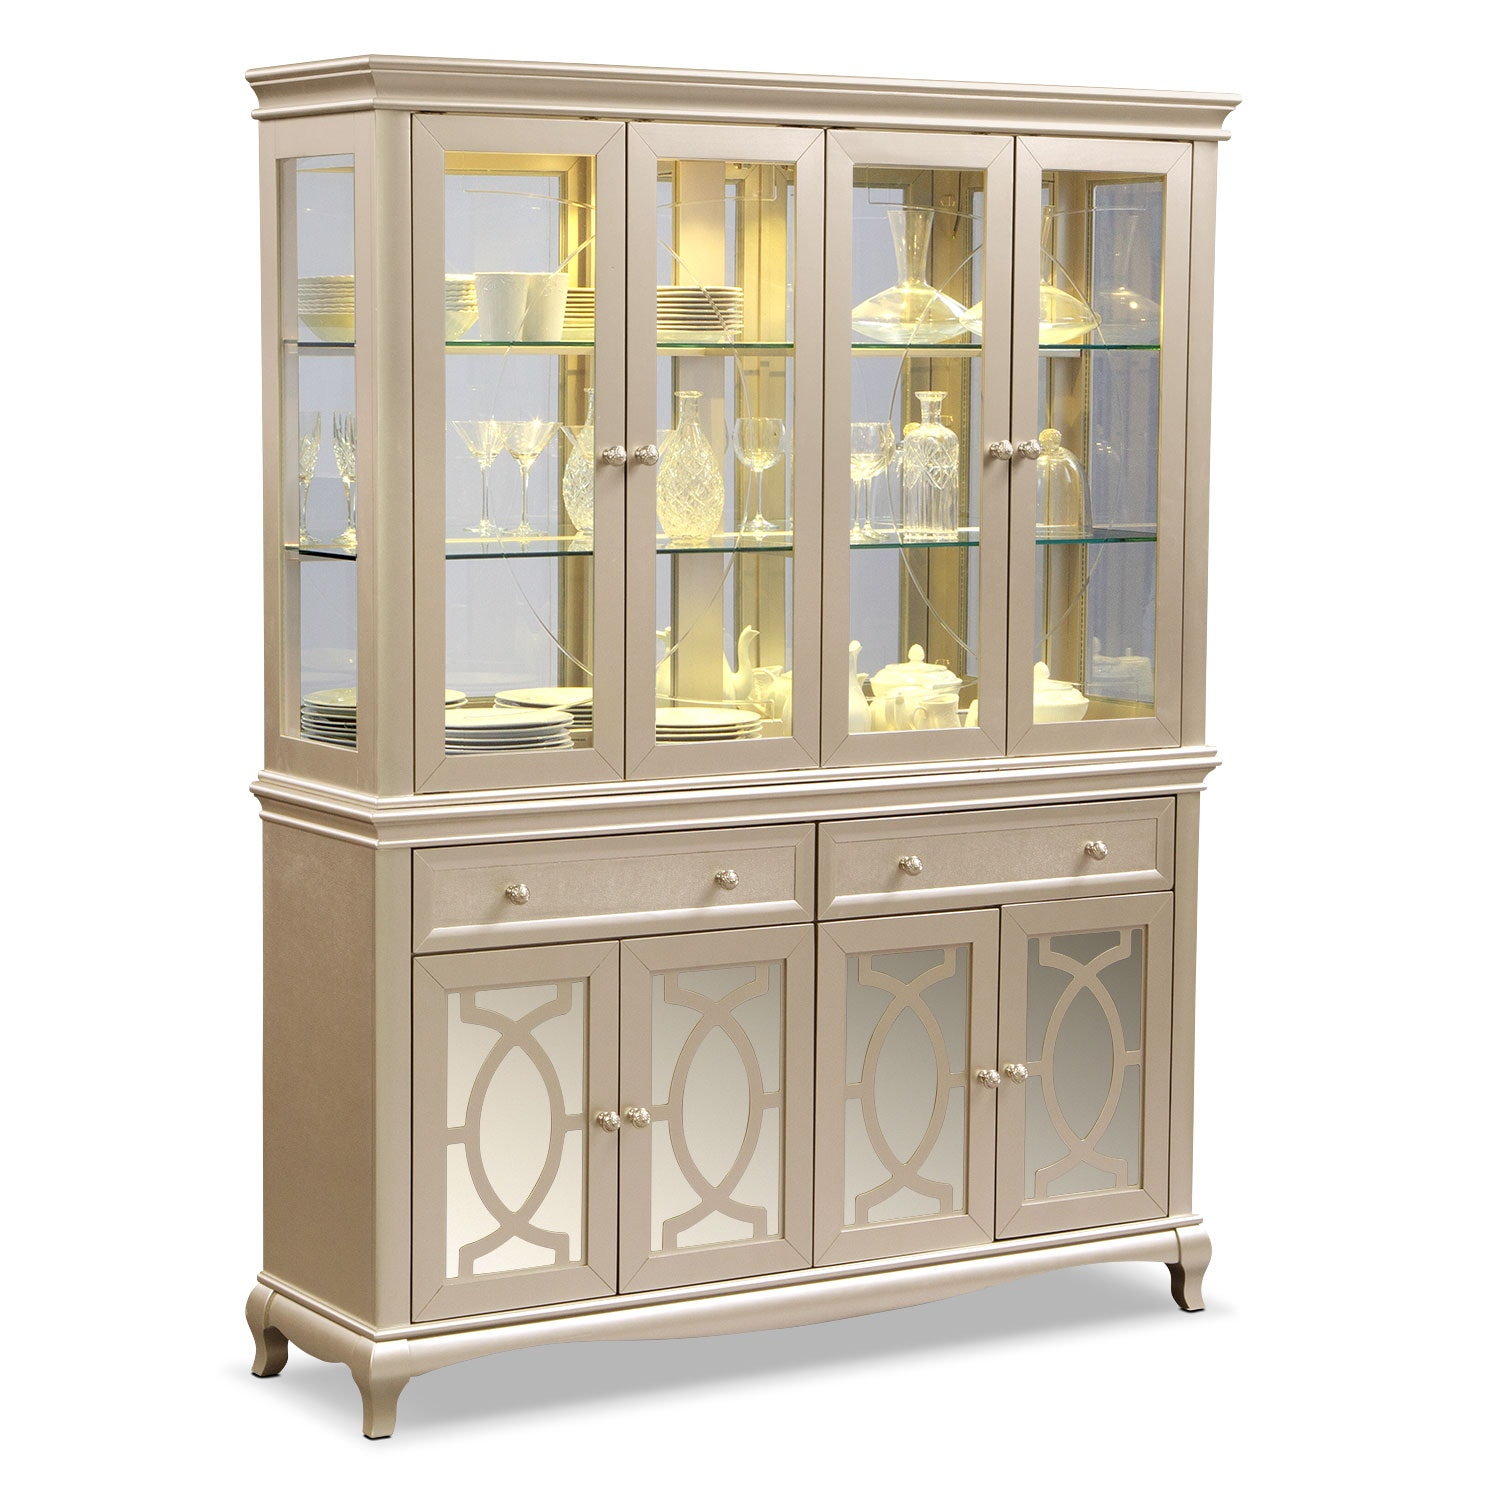 Dining room storage cabinets american signature furniture for Dining room wall furniture